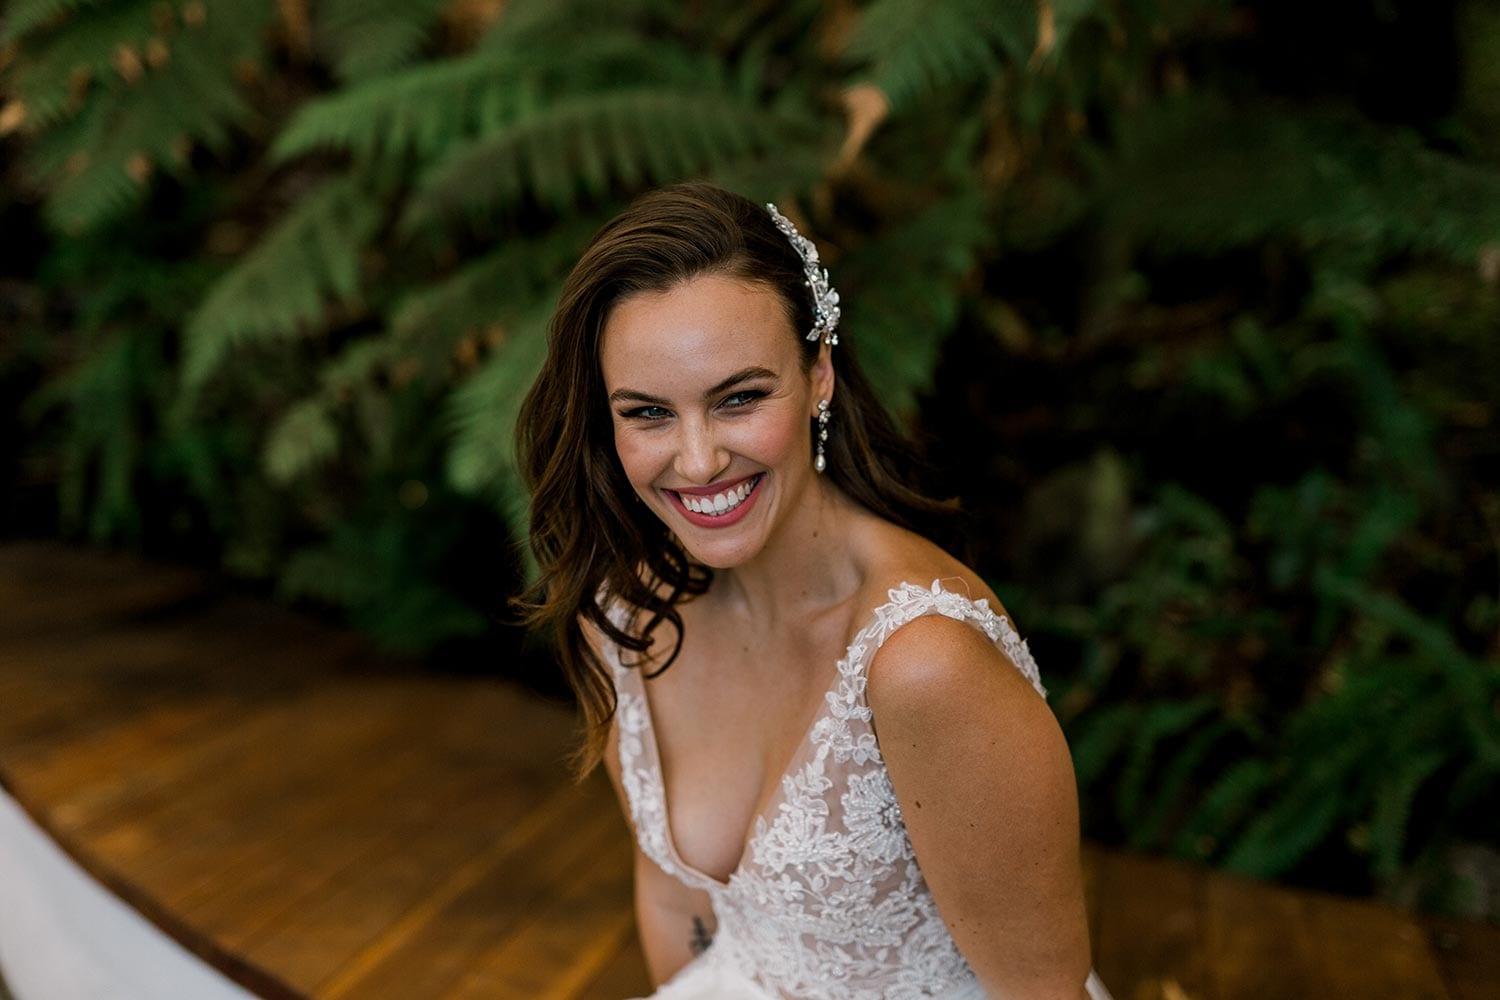 Vivian Wedding gown from Vinka Design - A stunning gown with a deep V-neckline on both the front & back. Fitted semi-sheer nude bodice embellished with a beaded floral lace, a soft layered tulle skirt. Worn in conservatory with fern background, shoulders and V-neckline.